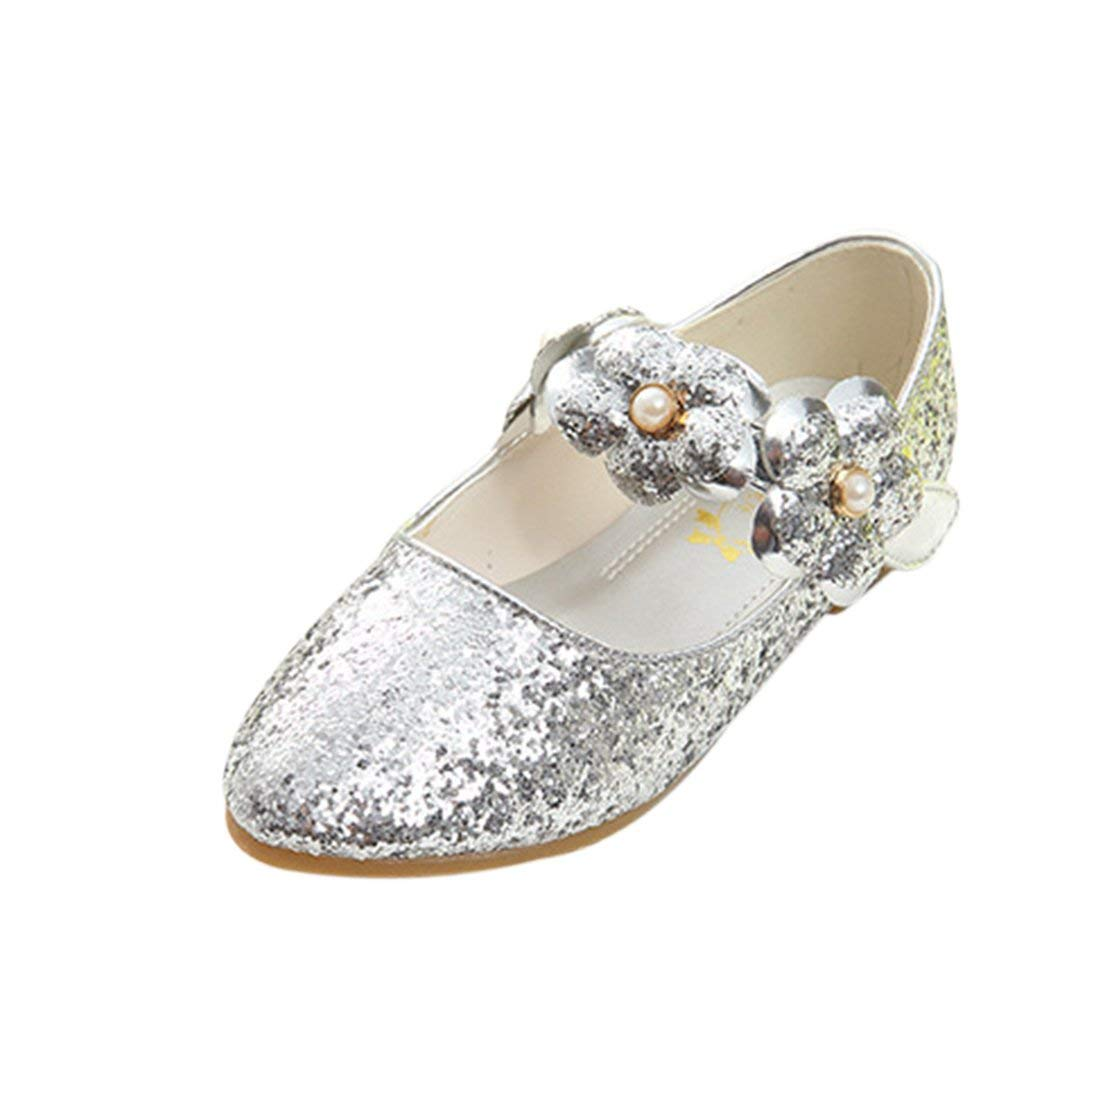 JTENGYAO Baby Flower Girls Queen Dress Up Princess Shoes Glitter Dance Shoes Party Shoes Sandals